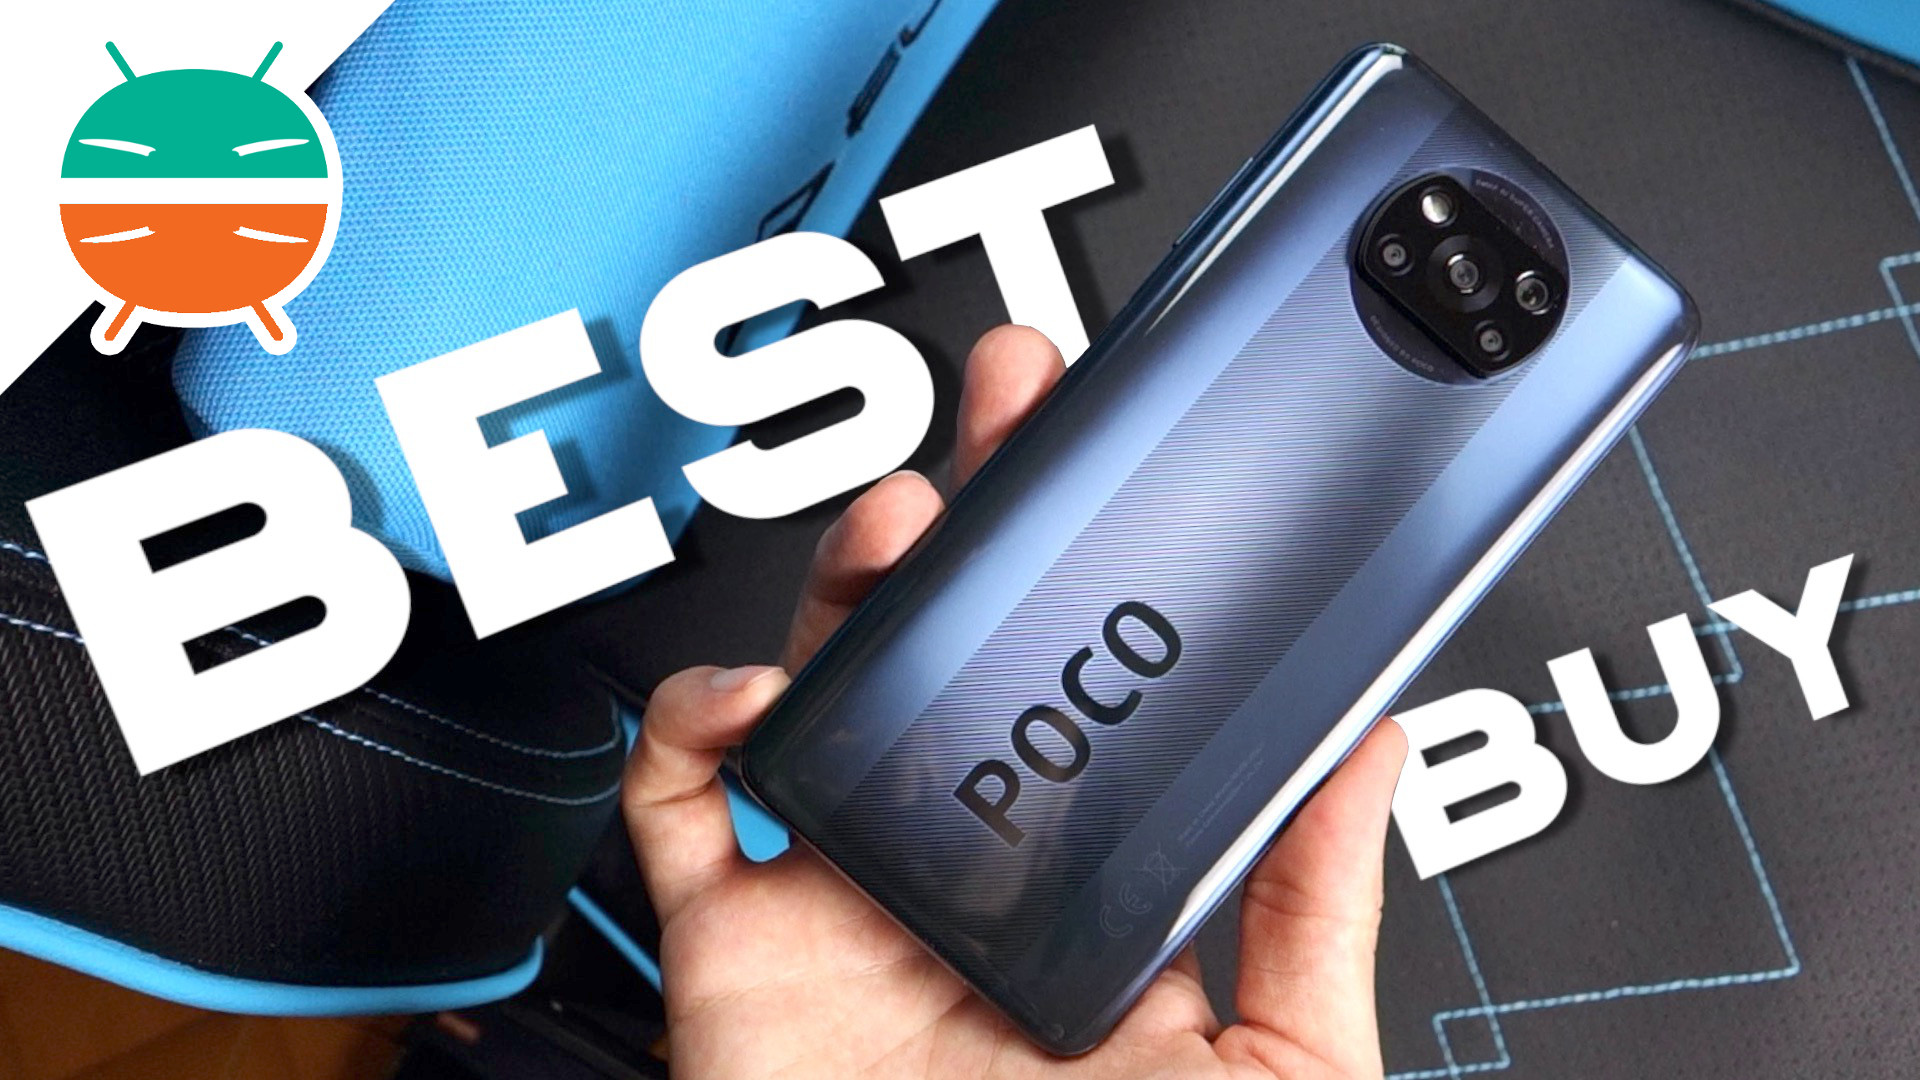 Review Poco X3 Nfc What More Could You Ask For At 199 Euros Gizchina It